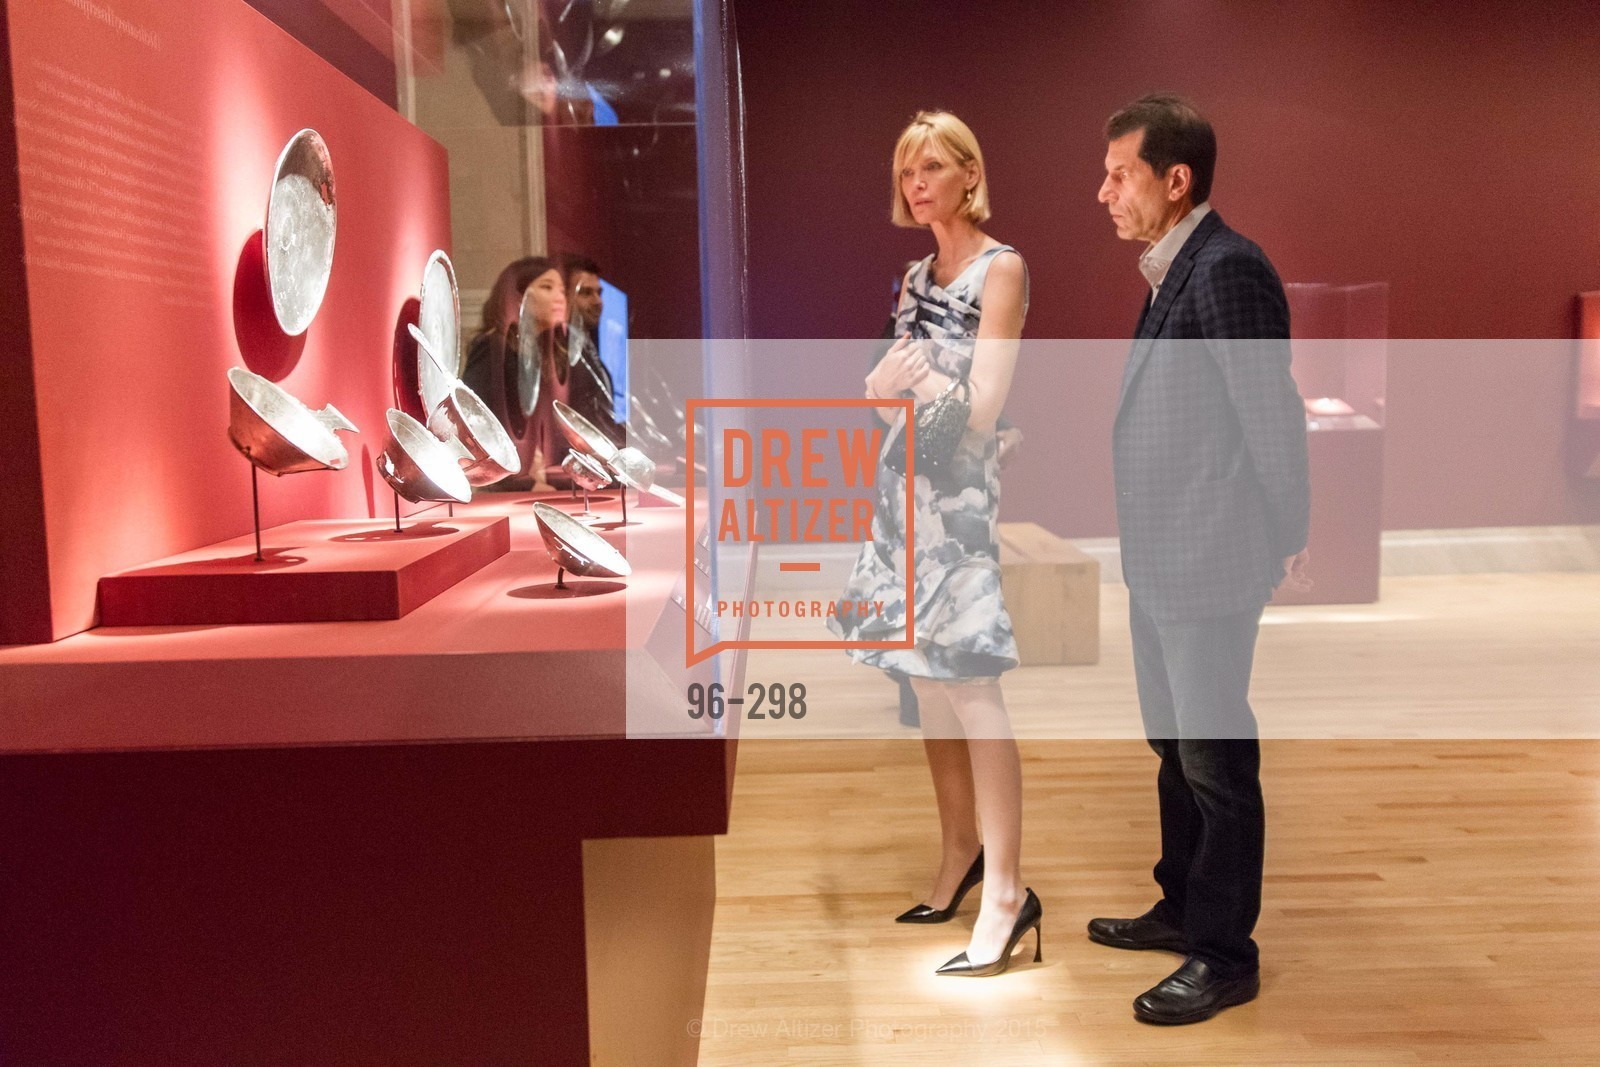 Karen Richardson, John Rubenstein, Breguet and Ancient Luxury Donor Opening Reception at Legion of Honor, Legion of Honor, September 17th, 2015,Drew Altizer, Drew Altizer Photography, full-service agency, private events, San Francisco photographer, photographer california